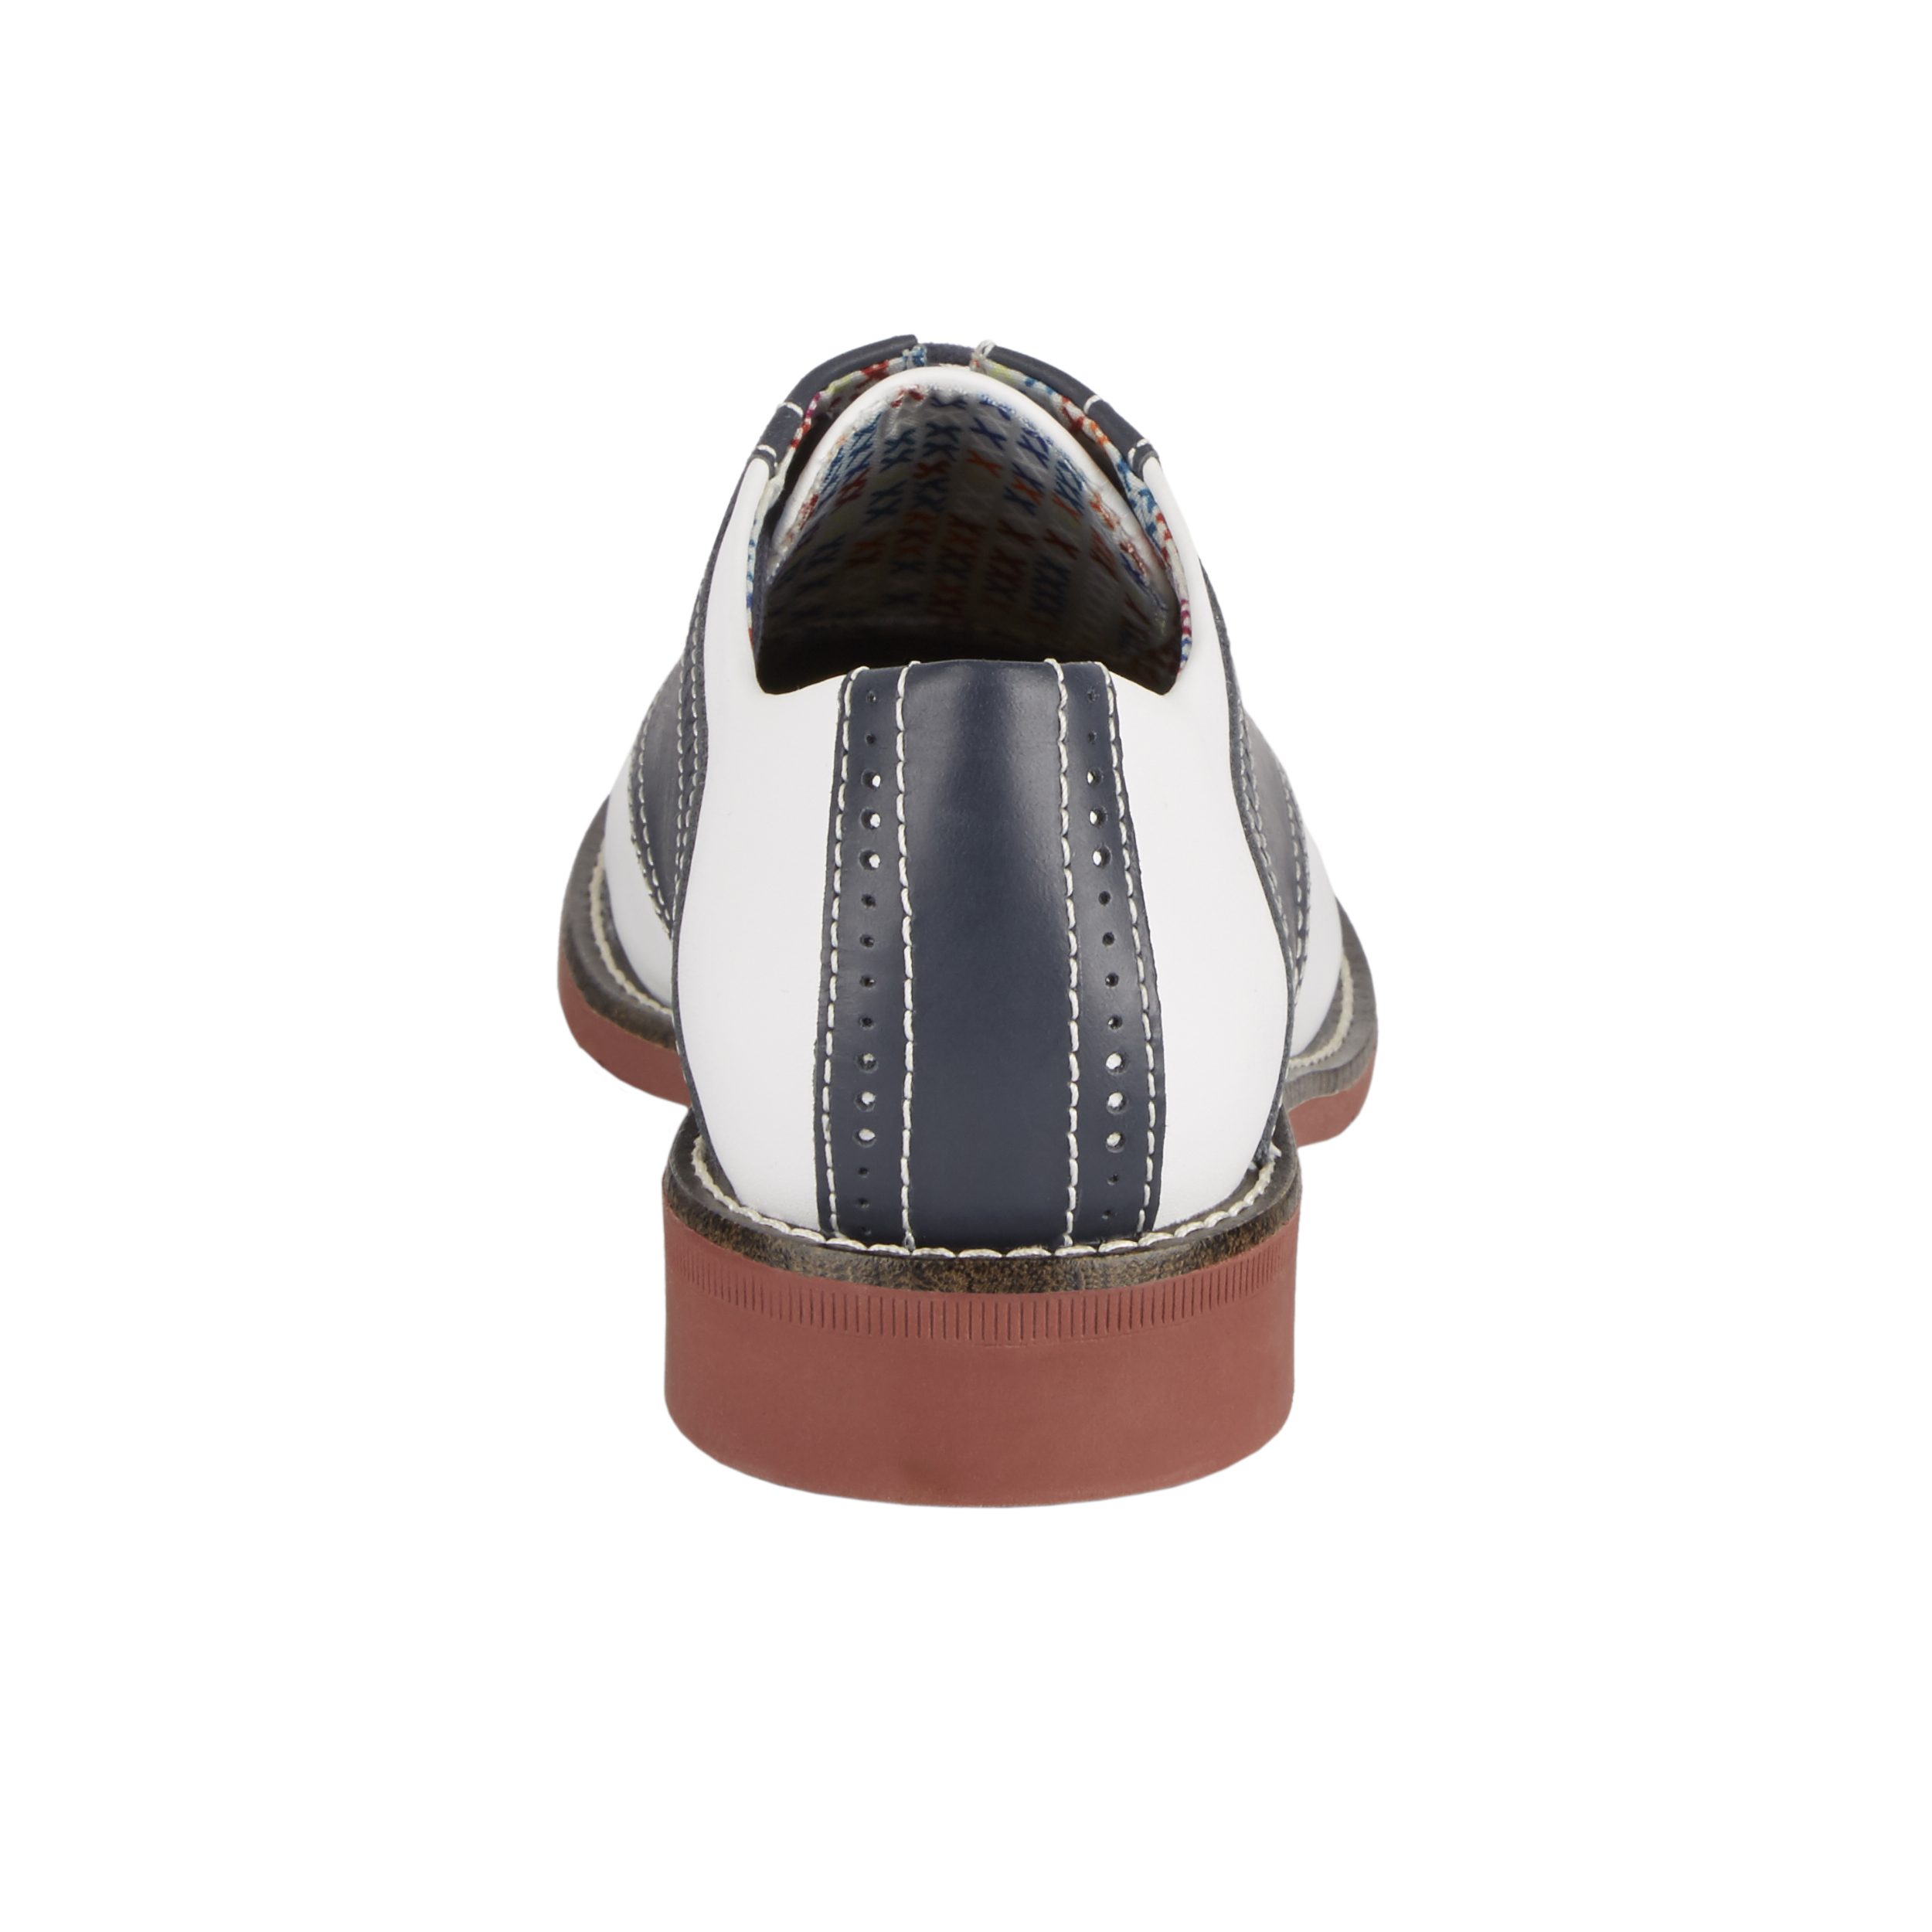 bcd1fca8cdec2 Details about G.H. Bass & Co. Womens Dora Genuine Leather Two-Tone Saddle  Lace-up Oxford Shoe